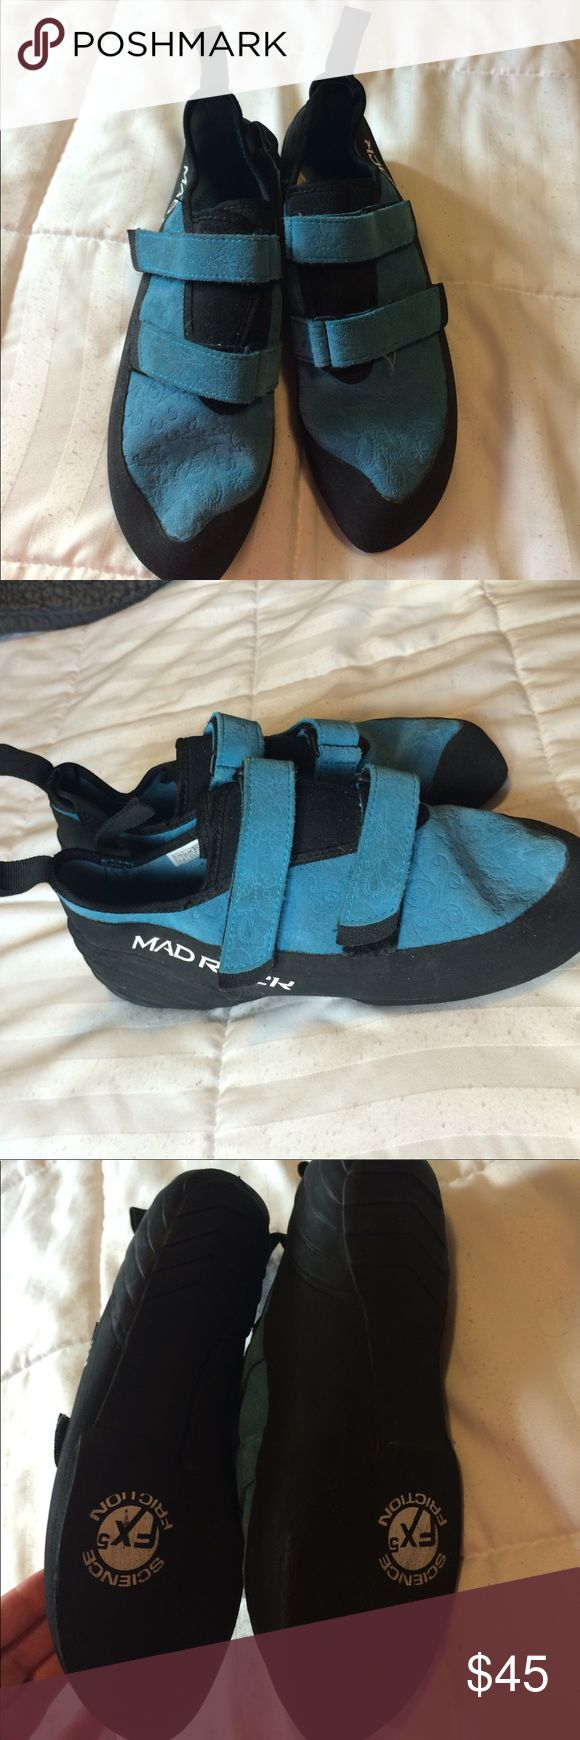 Like new rock climbing shoes Floral blue print with velcro straps mad rock Shoes Athletic Shoes